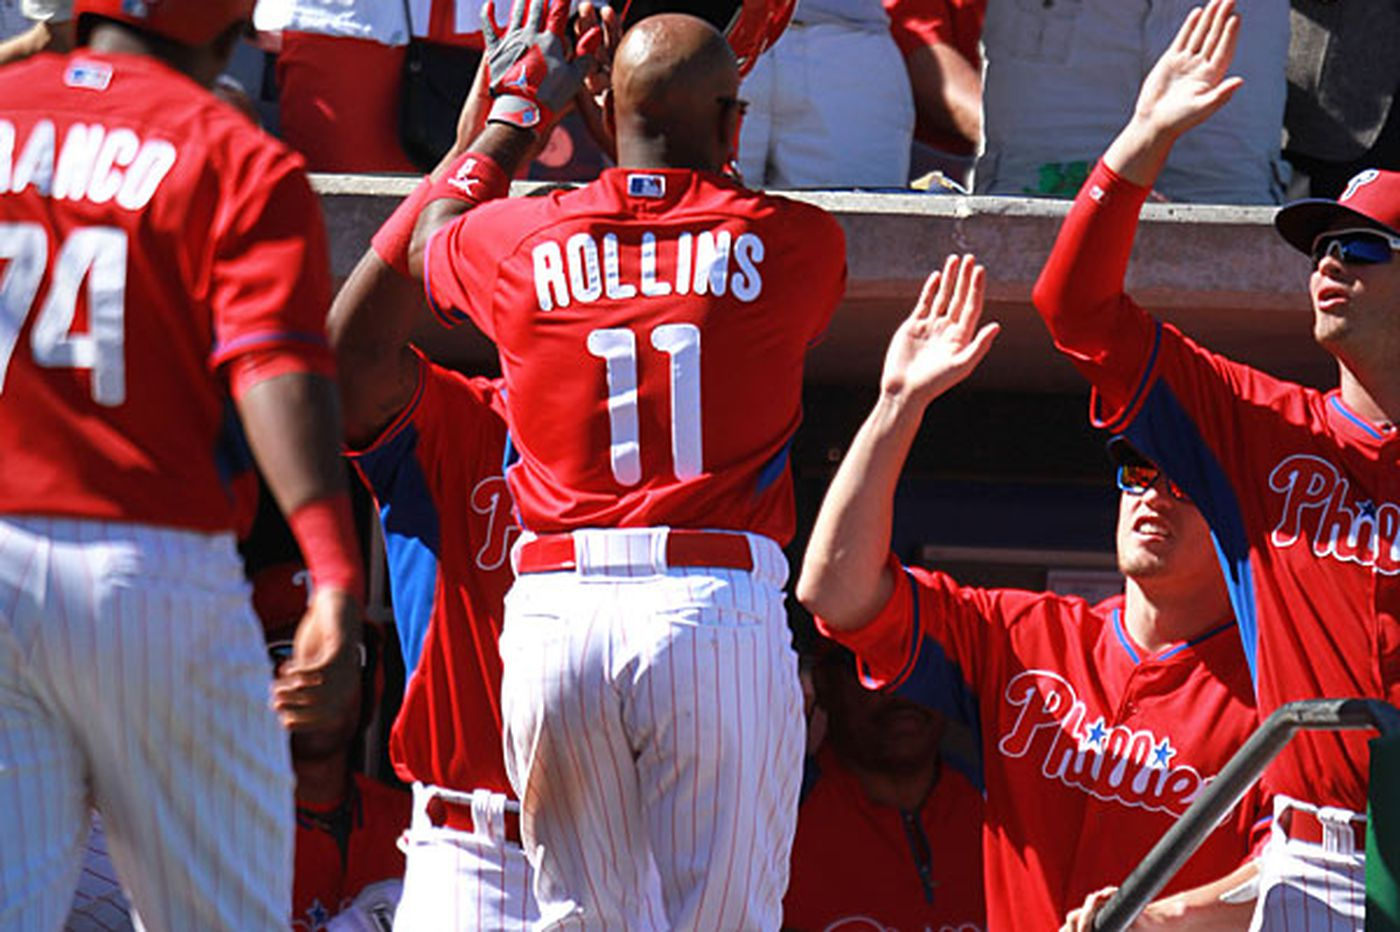 Jimmy Rollins powers Phillies to 10-6 win